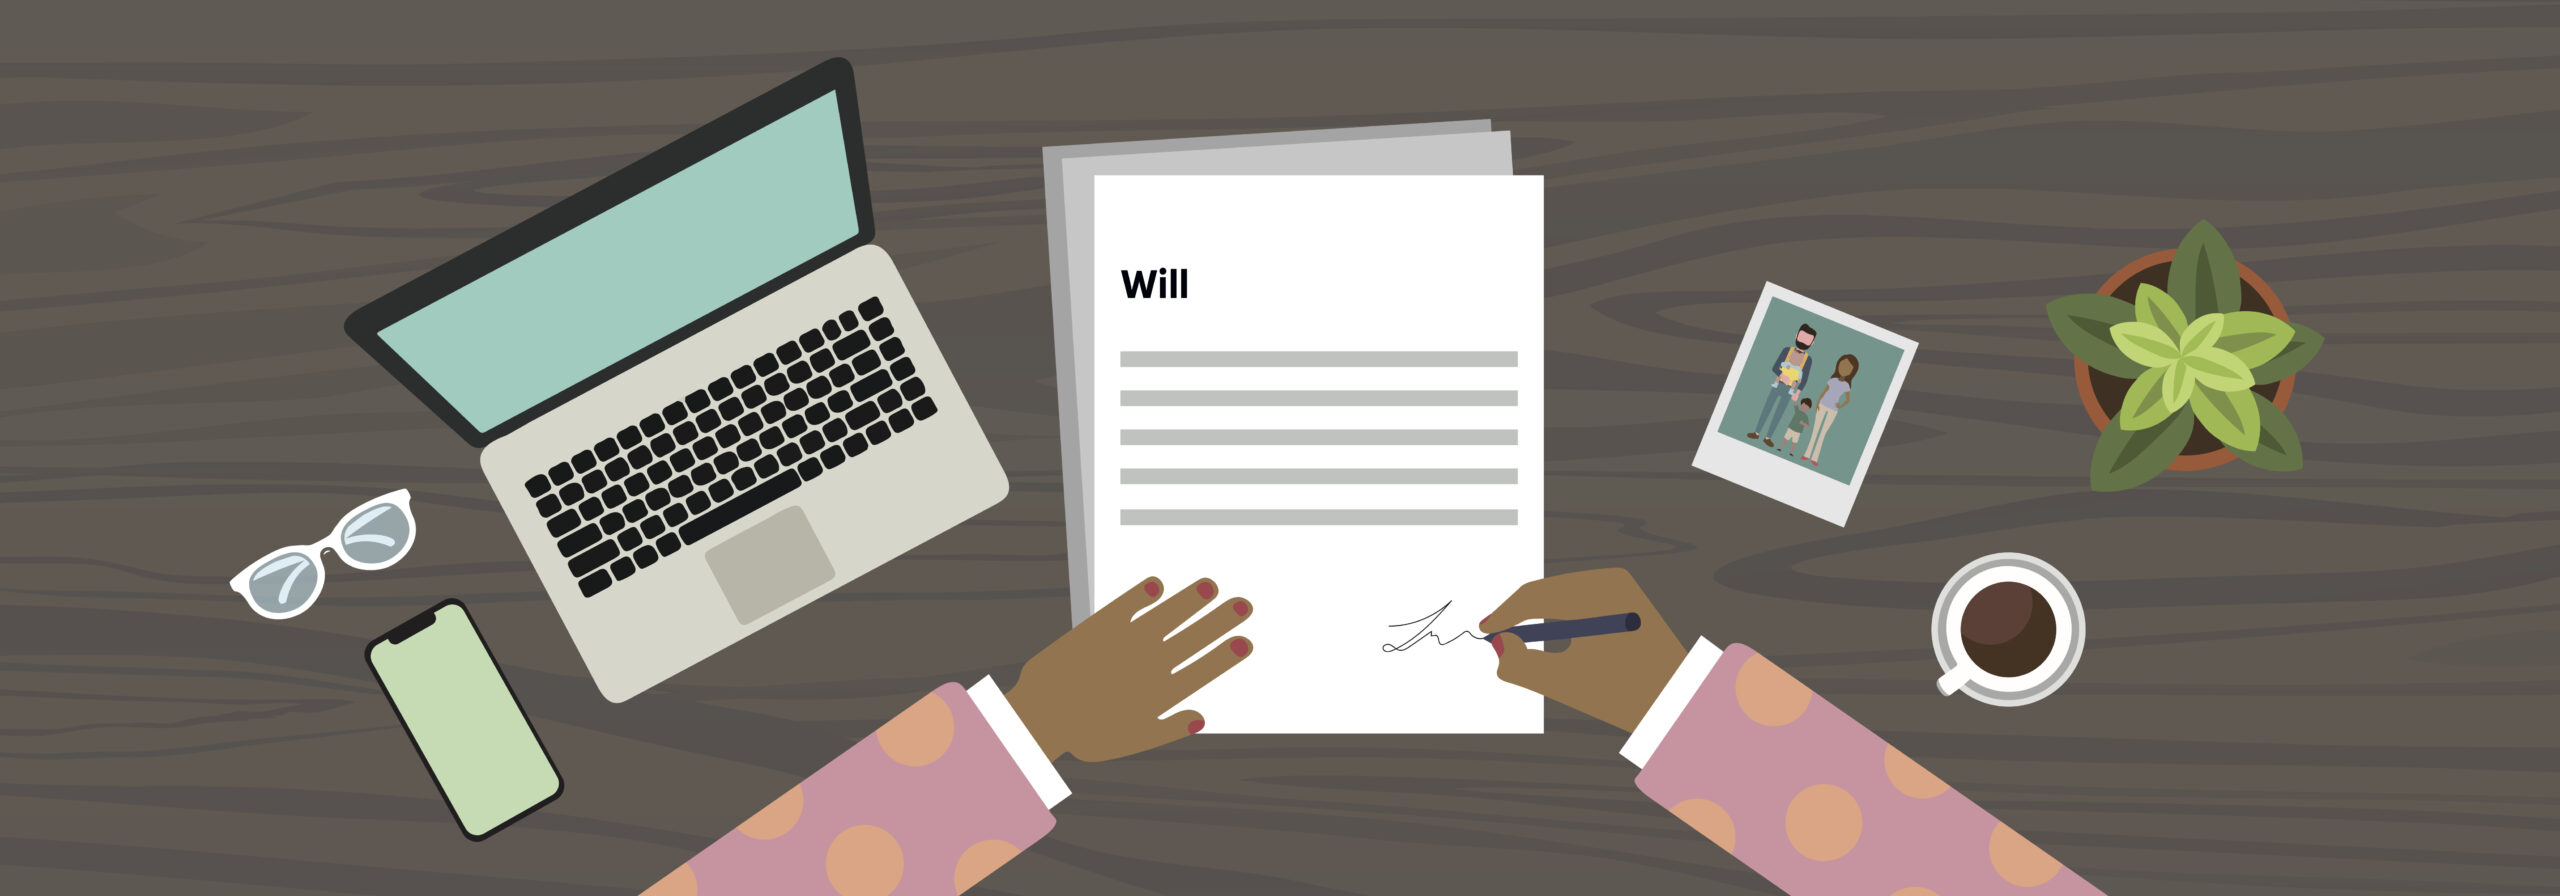 Nil rate band trusts in wills – do they still have a purpose?